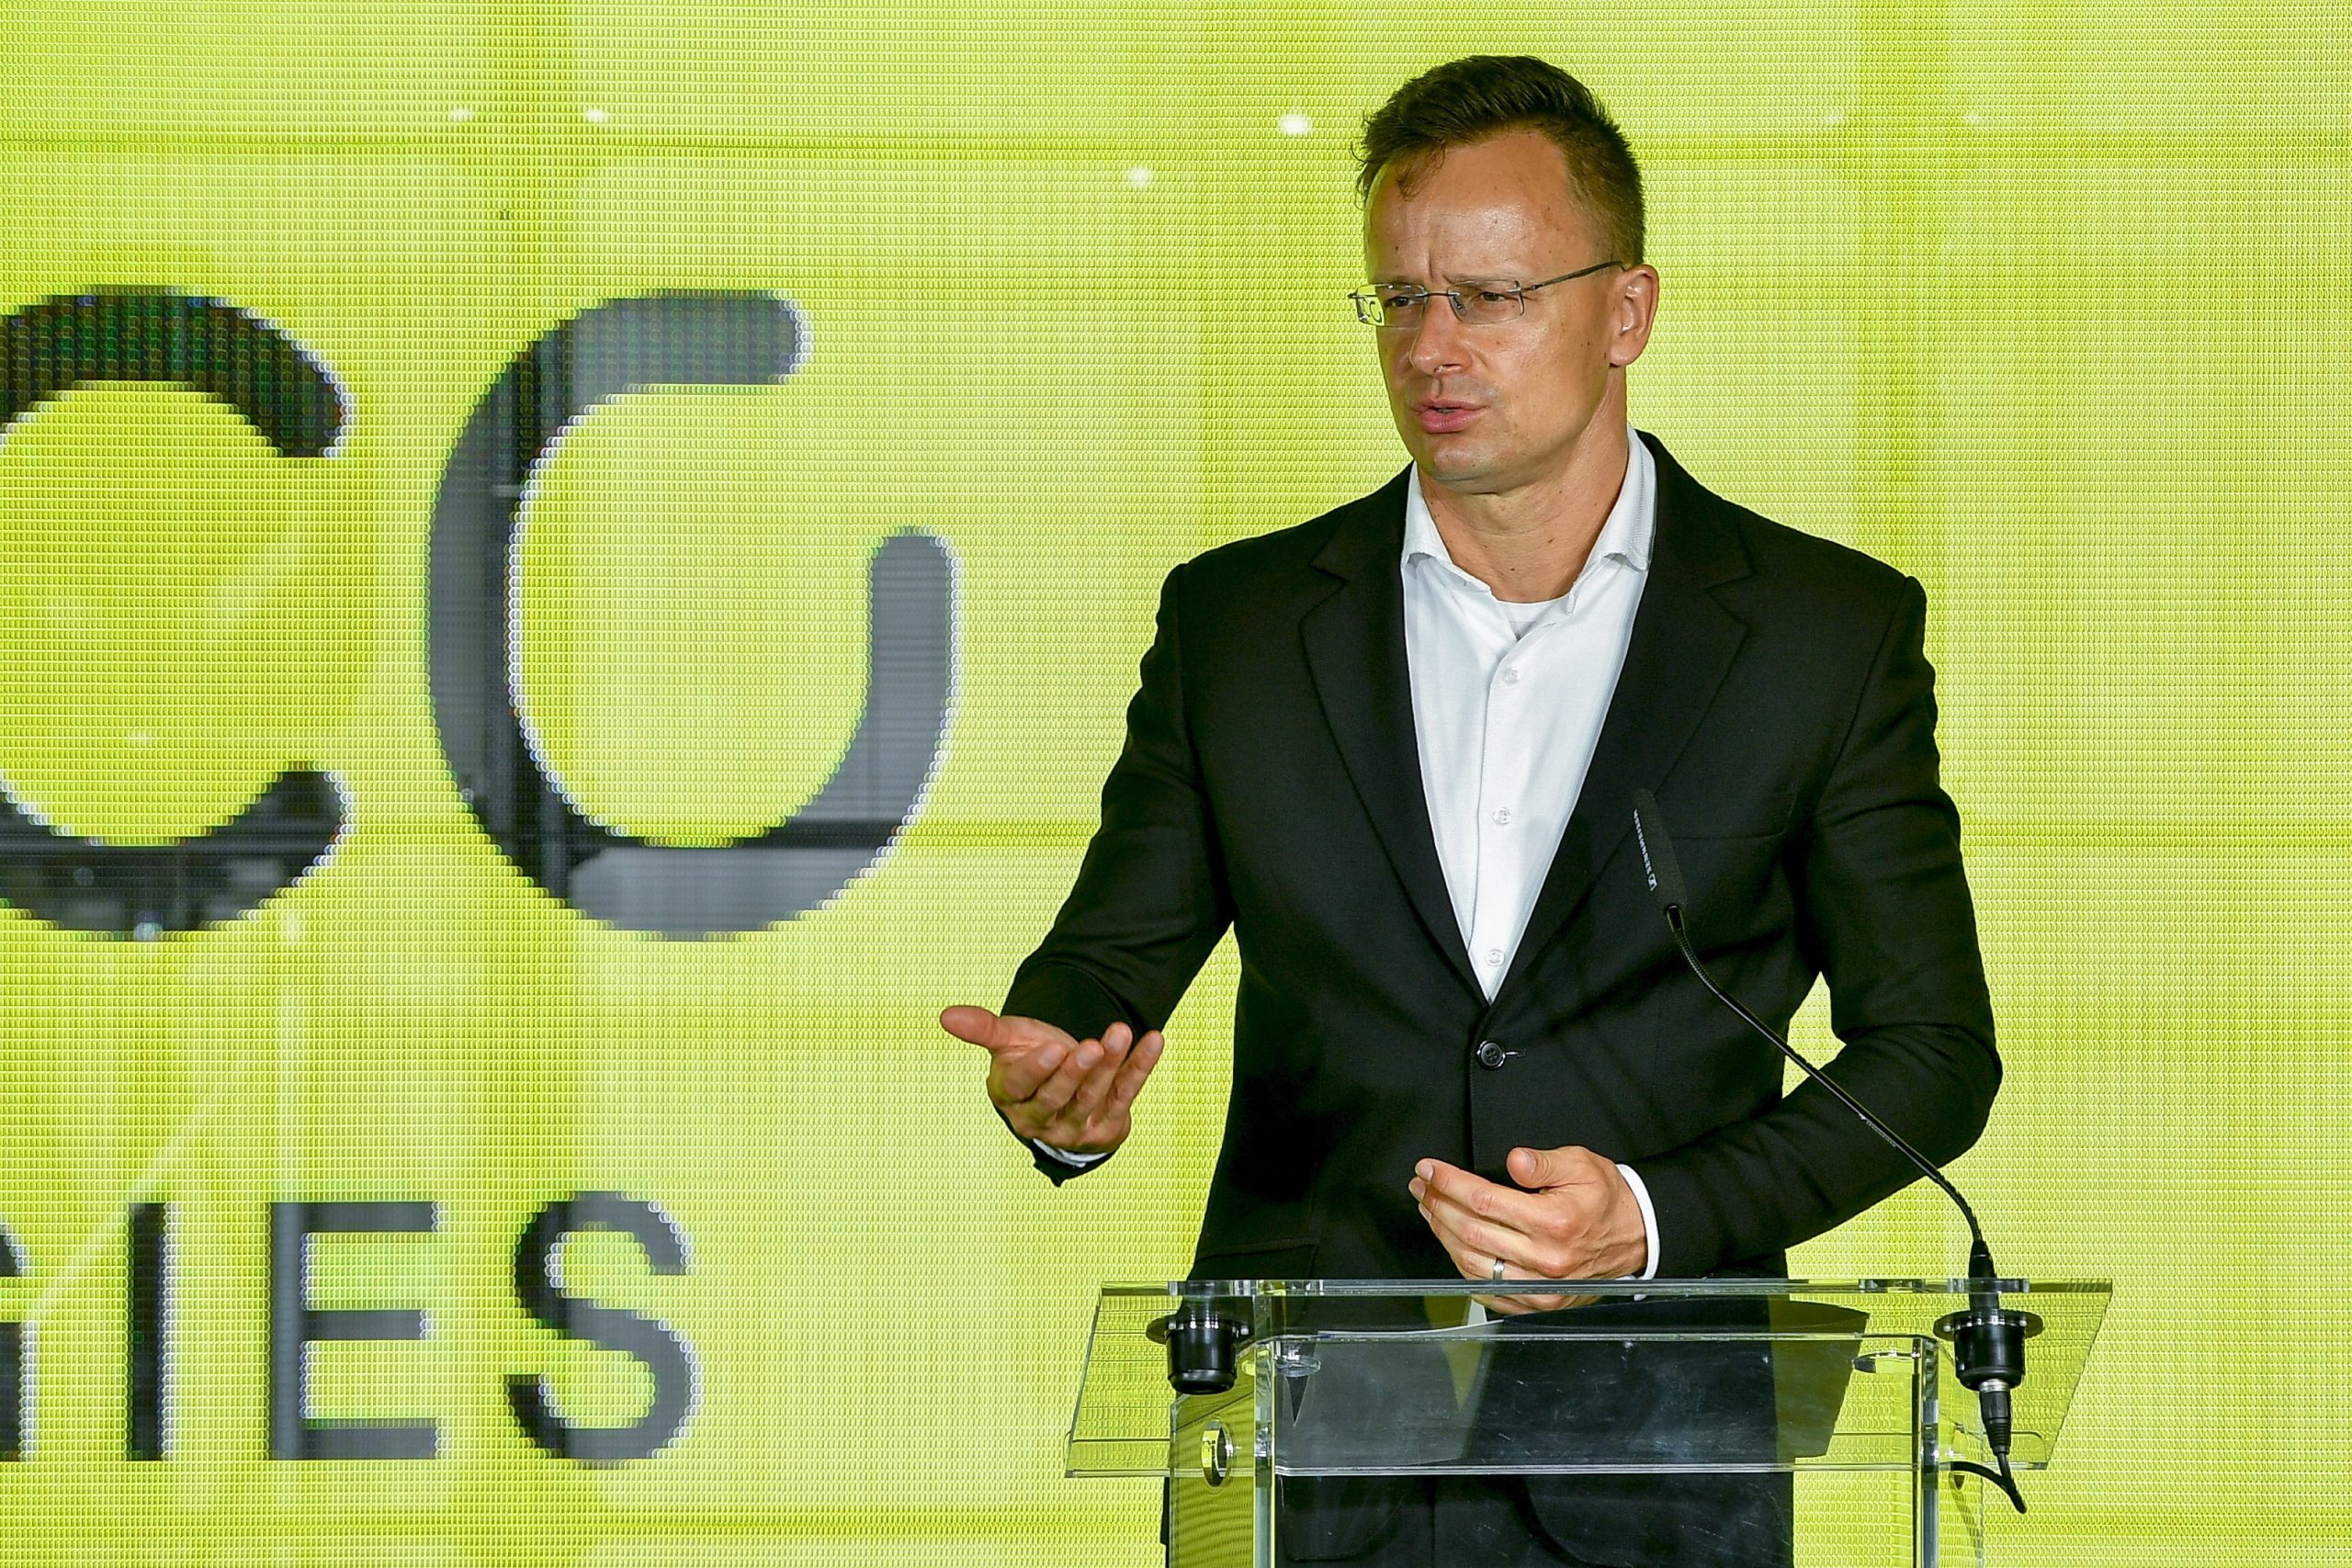 More Proposals Approved to Speed up Economic Recovery, Péter Szijjártó Says